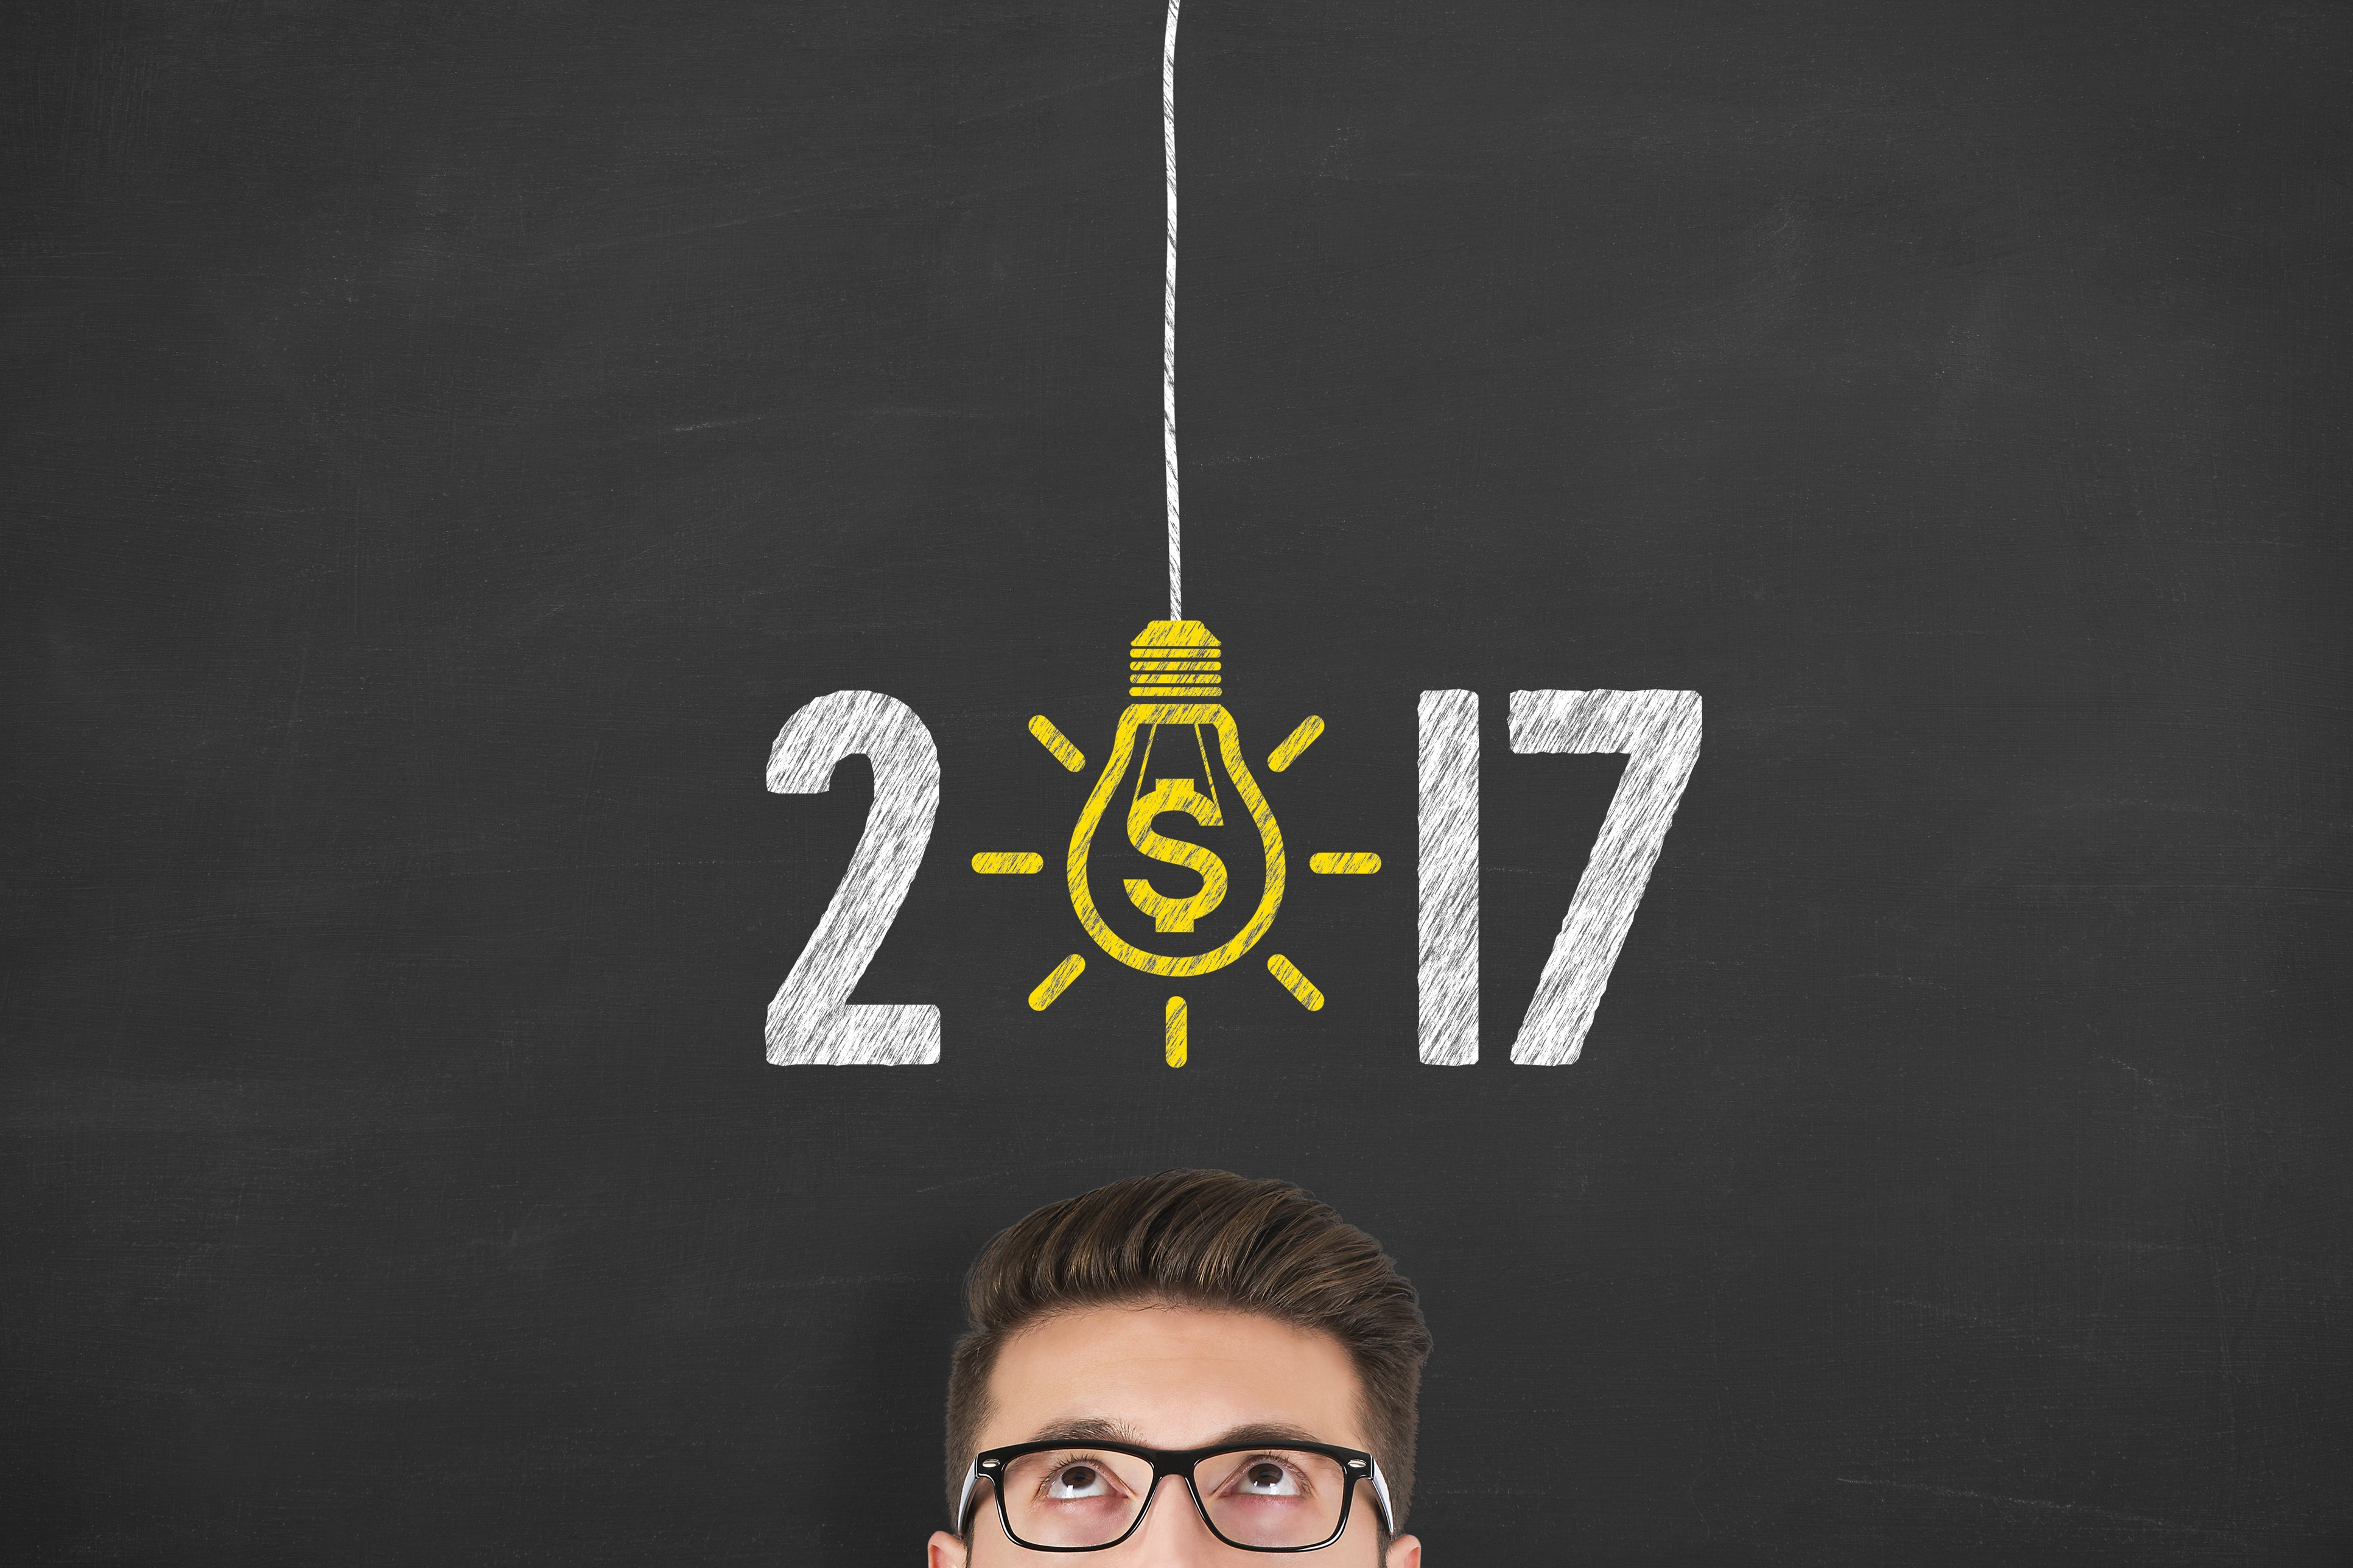 7 New Year's Resolutions to Make Expense Management a Breeze in 2017